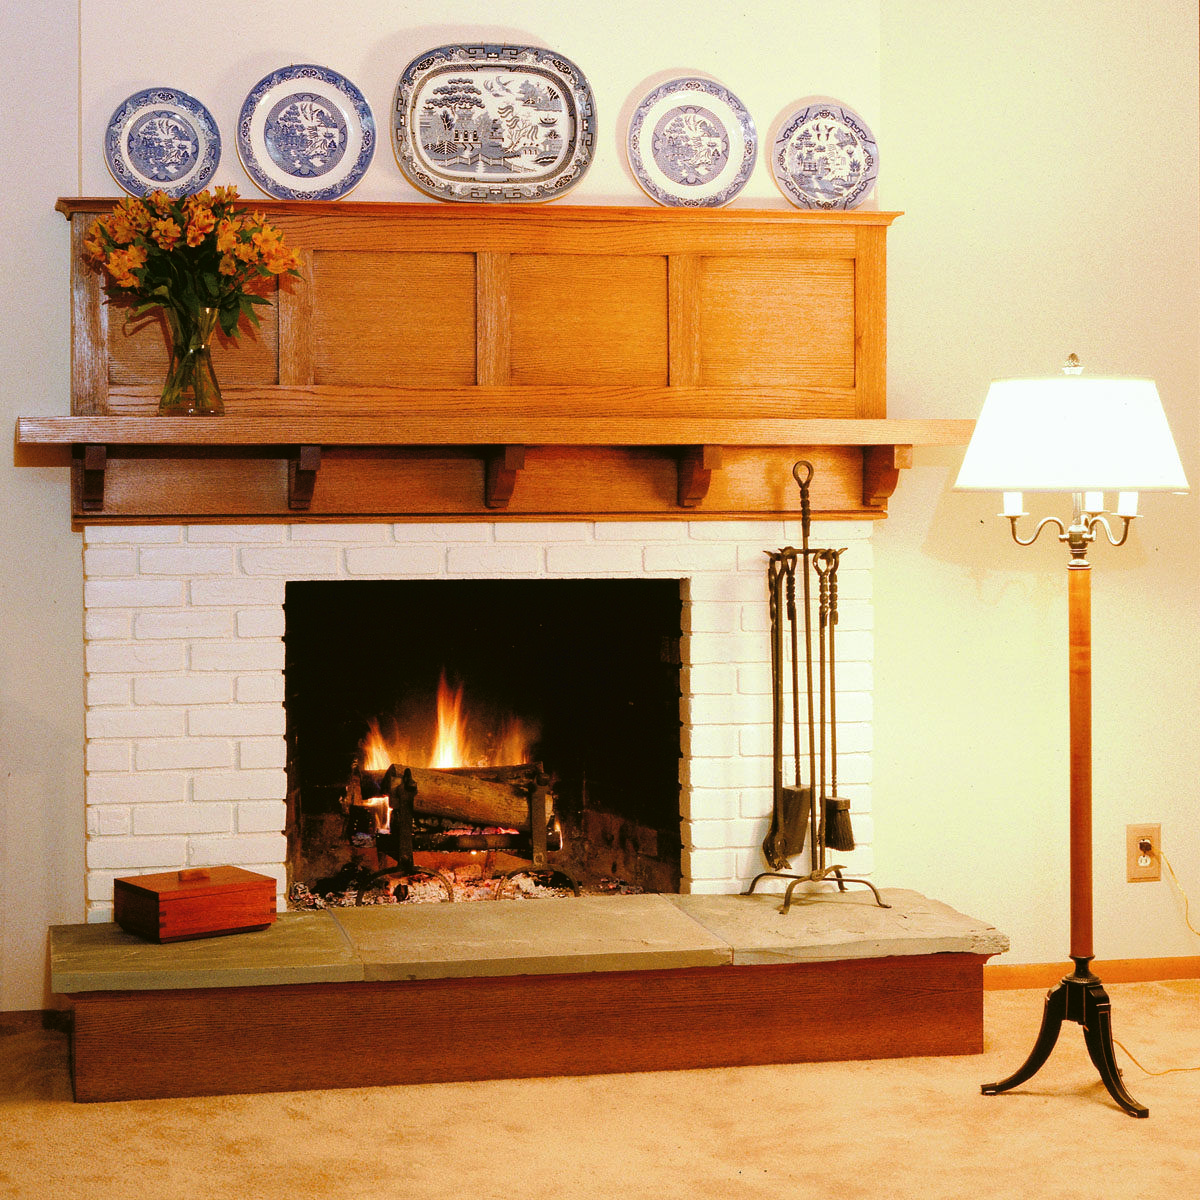 Free Plan for Arts u Crafts Mantel This straightforward mantel